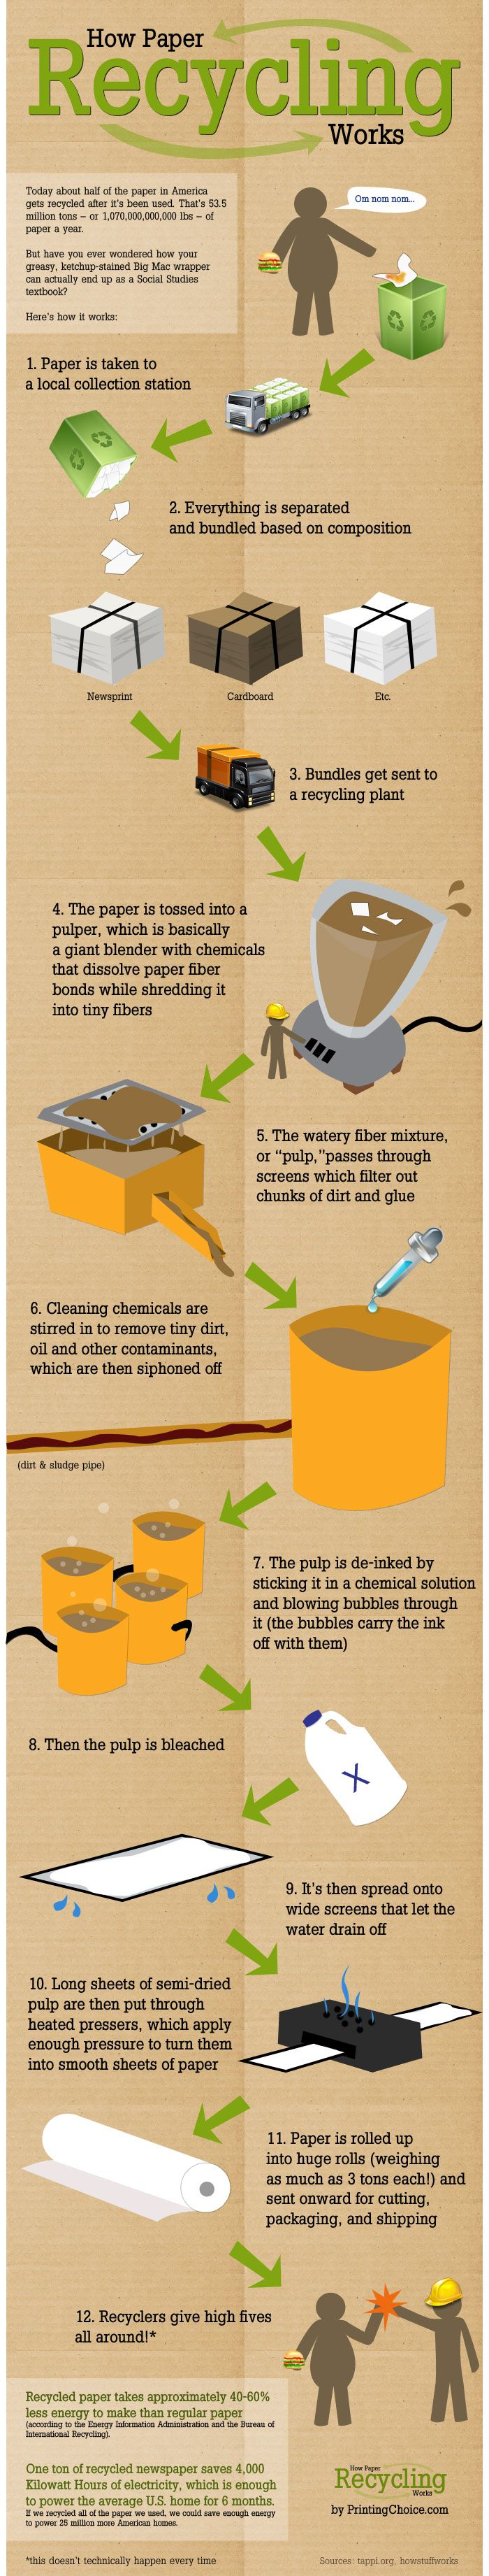 How Paper Recycling Works